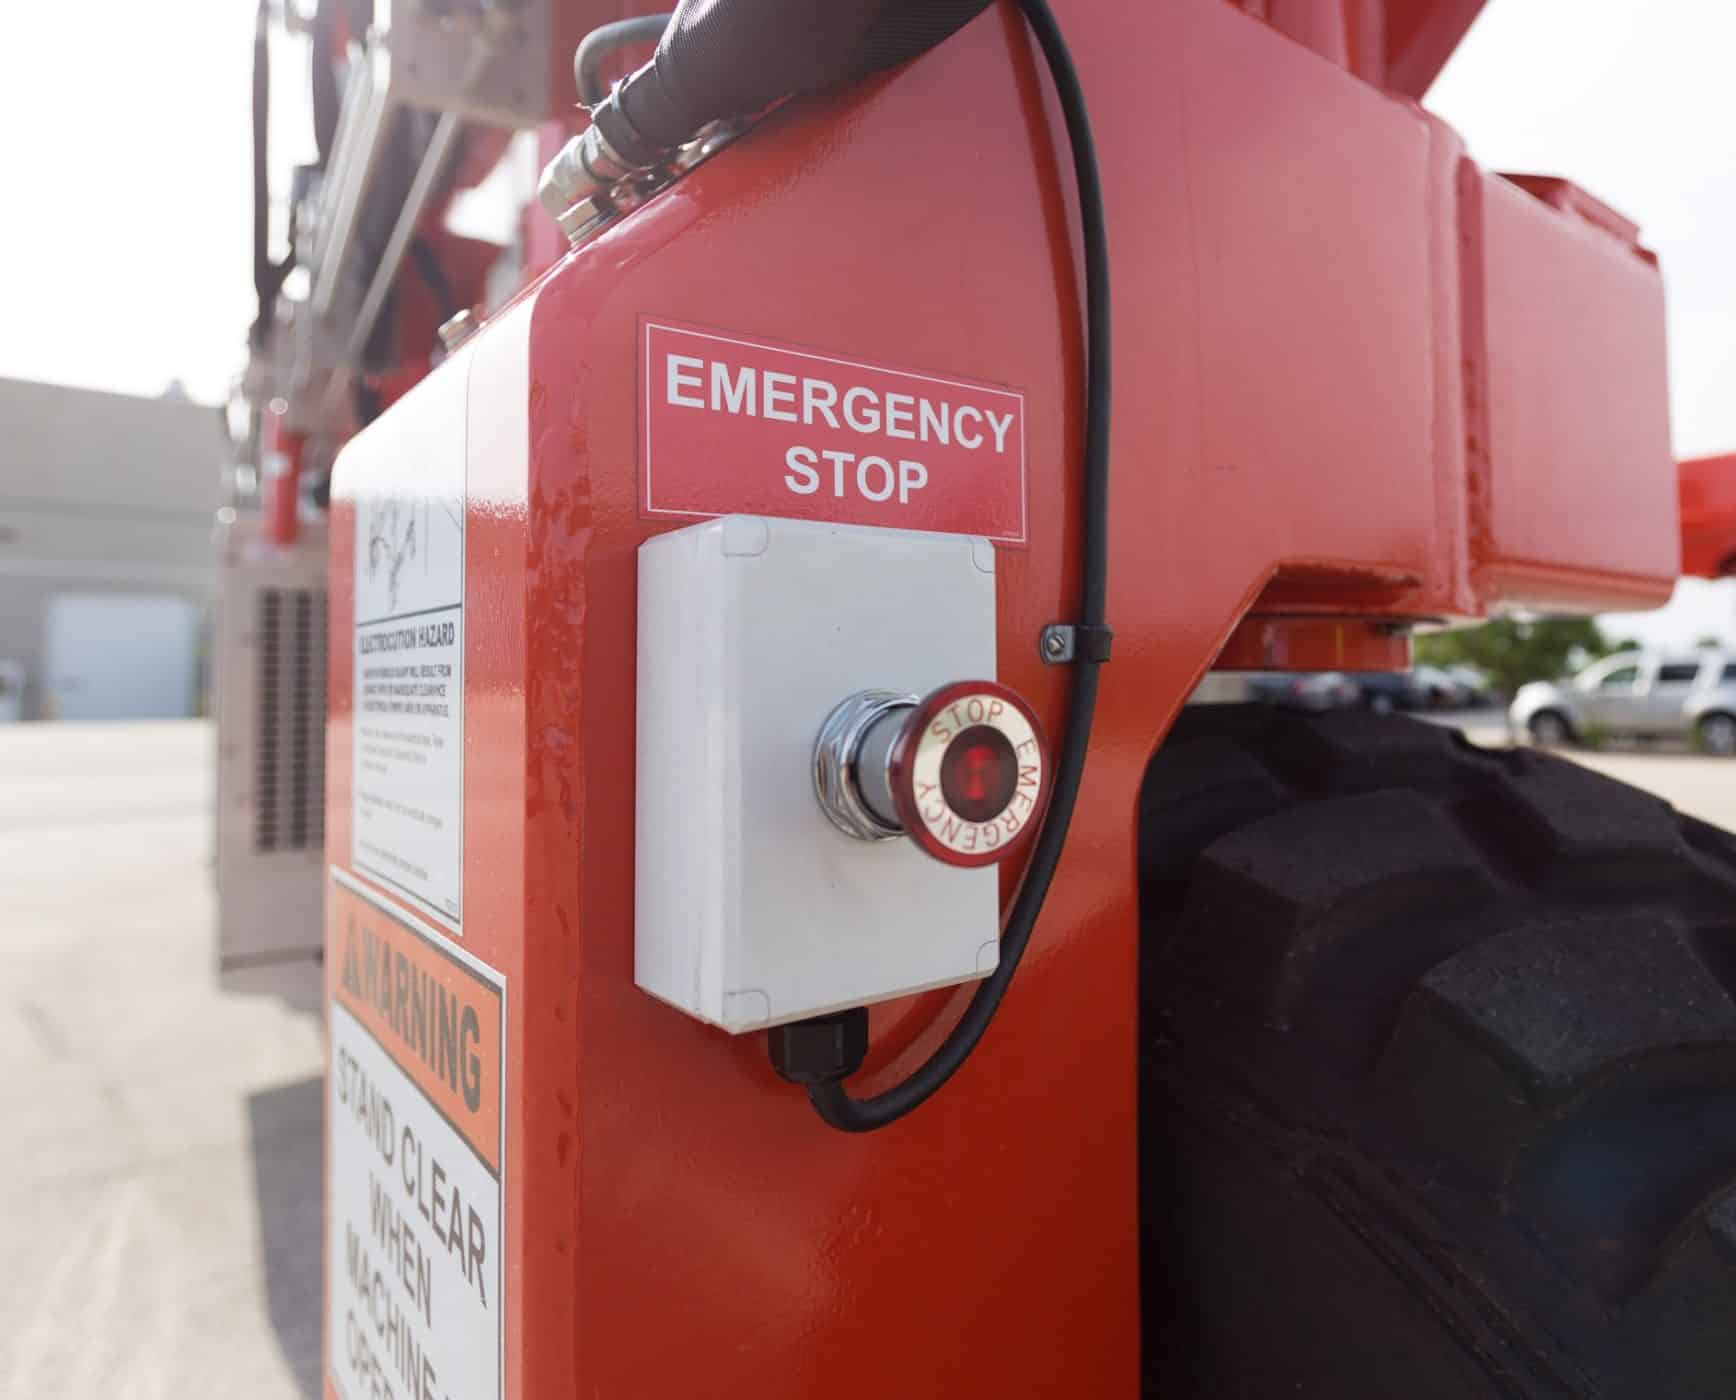 Crane Safety with Stop Button